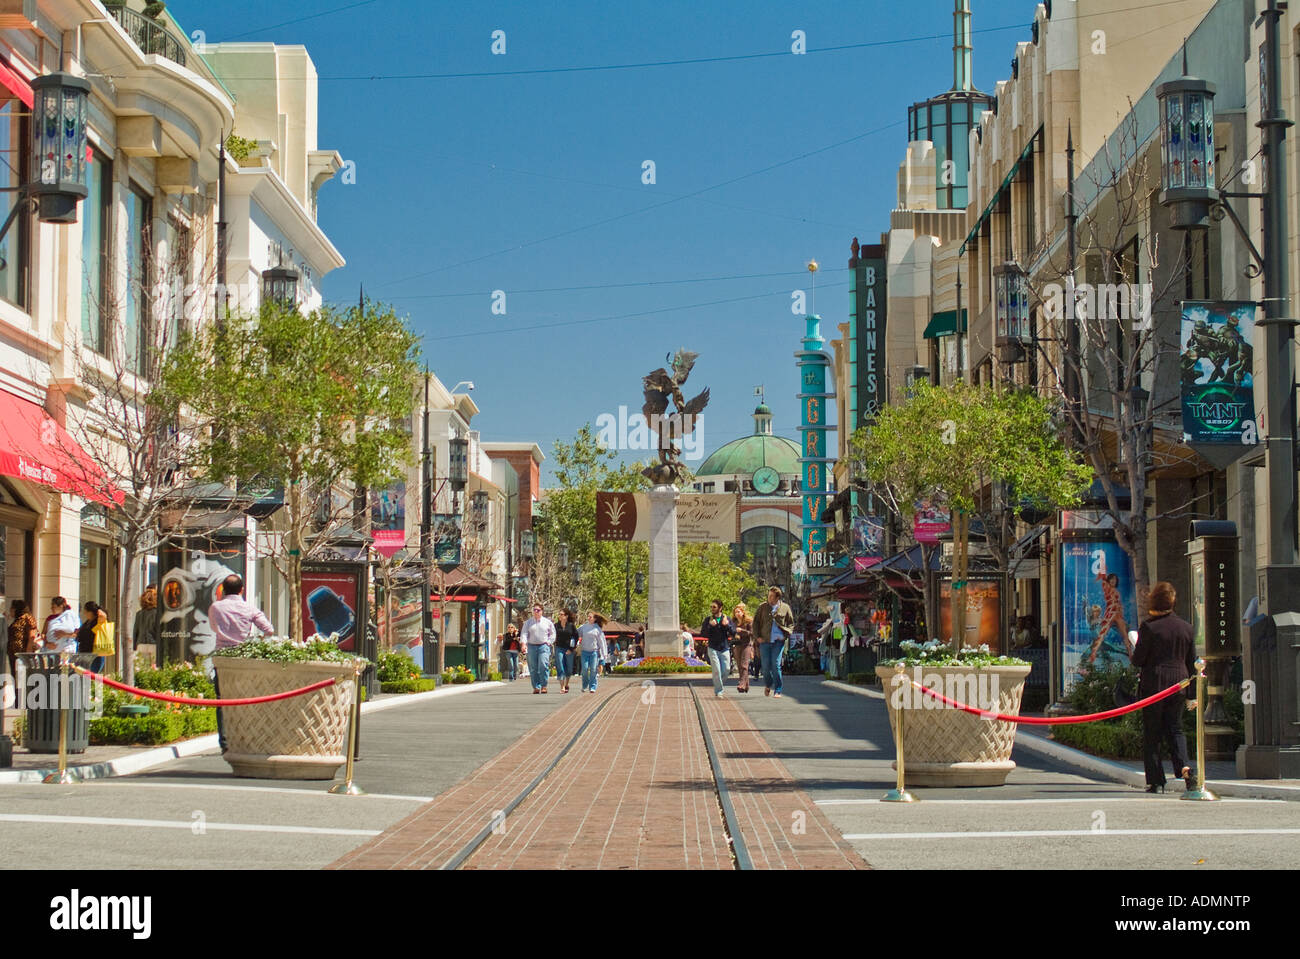 The Grove Mall Los Angeles Stock Photos & The Grove Mall Los Angeles on the grove at farmers market, the grove mall pretoria, third street promenade, otay ranch town center, westfield topanga, the grove mall in california, south coast plaza, the grove beverly hills, los angeles sports and entertainment district, the grove trolley, the grove santa, westfield century city, the grove wesley chapel, sunrise mall, the improv, universal citywalk, the grove shopping center, santa monica place, the grove shopping mall, glendale galleria, the grove 3rd street, cbs television city, del amo fashion center, the beverly center, the grove ca, the grove movie theater, fashion island, the grove in hollywood, the grove la, angels flight, the grove fountain, americana at brand,